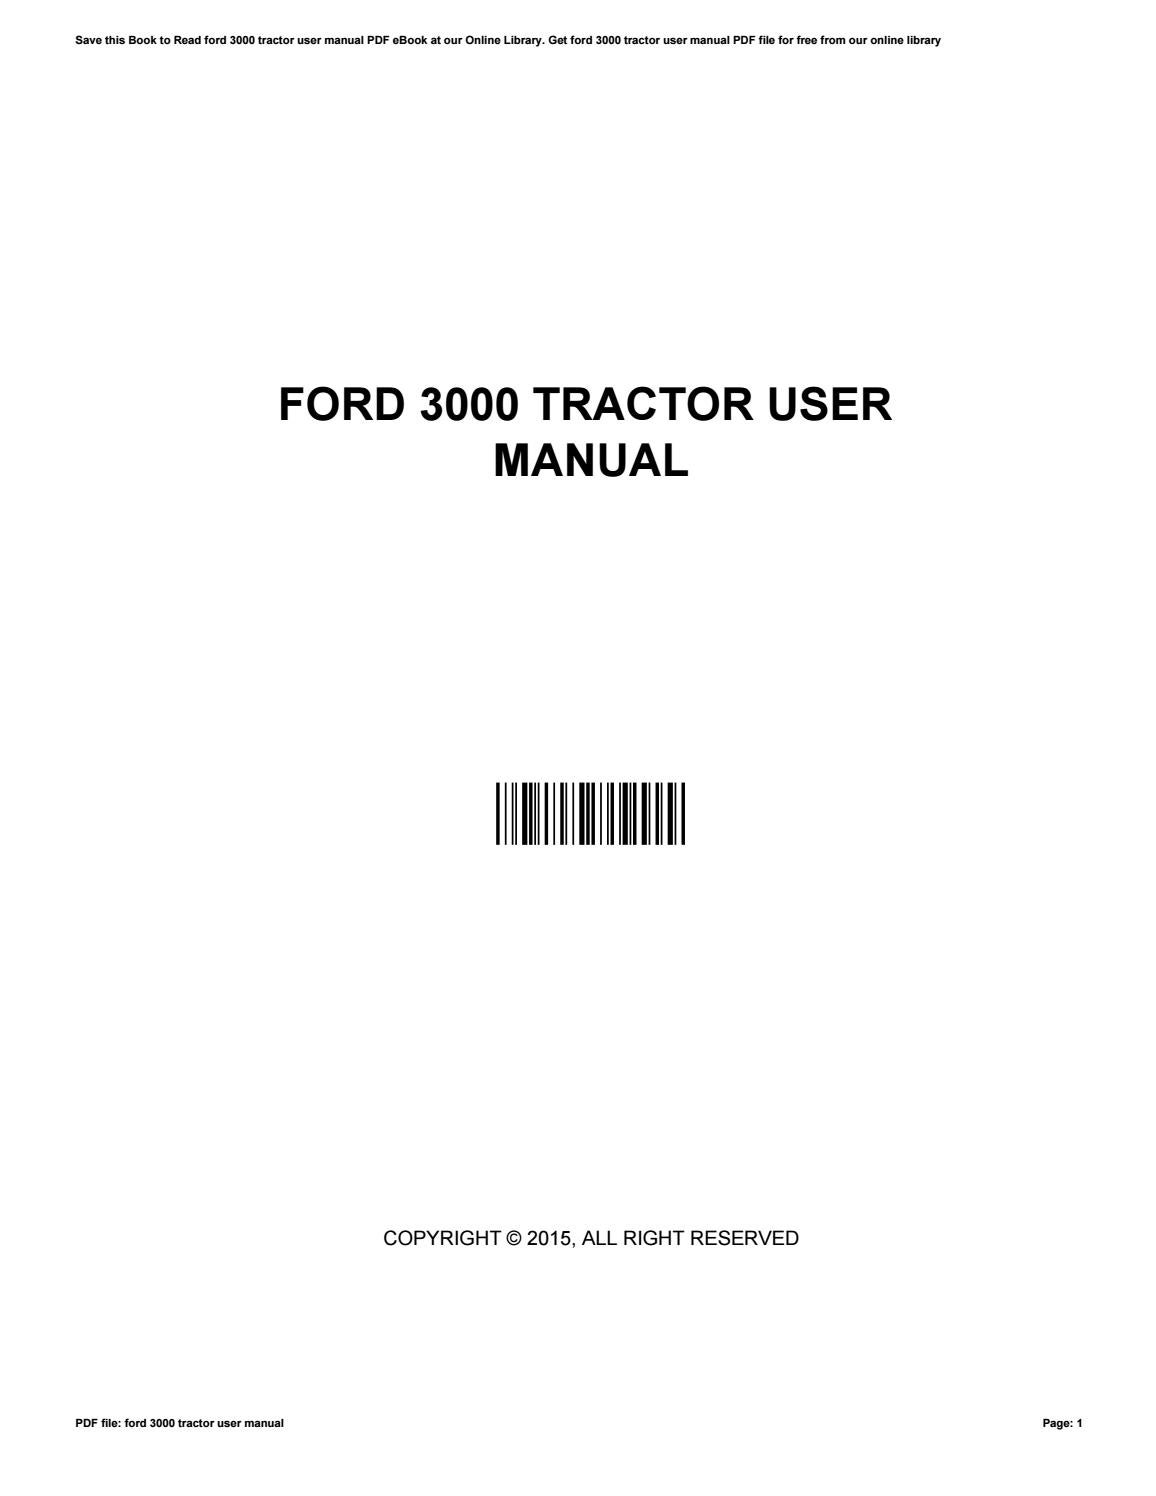 hight resolution of ford tractor user manual claytoncruz issuu jpg 1156x1496 ford 3000 tractor manual